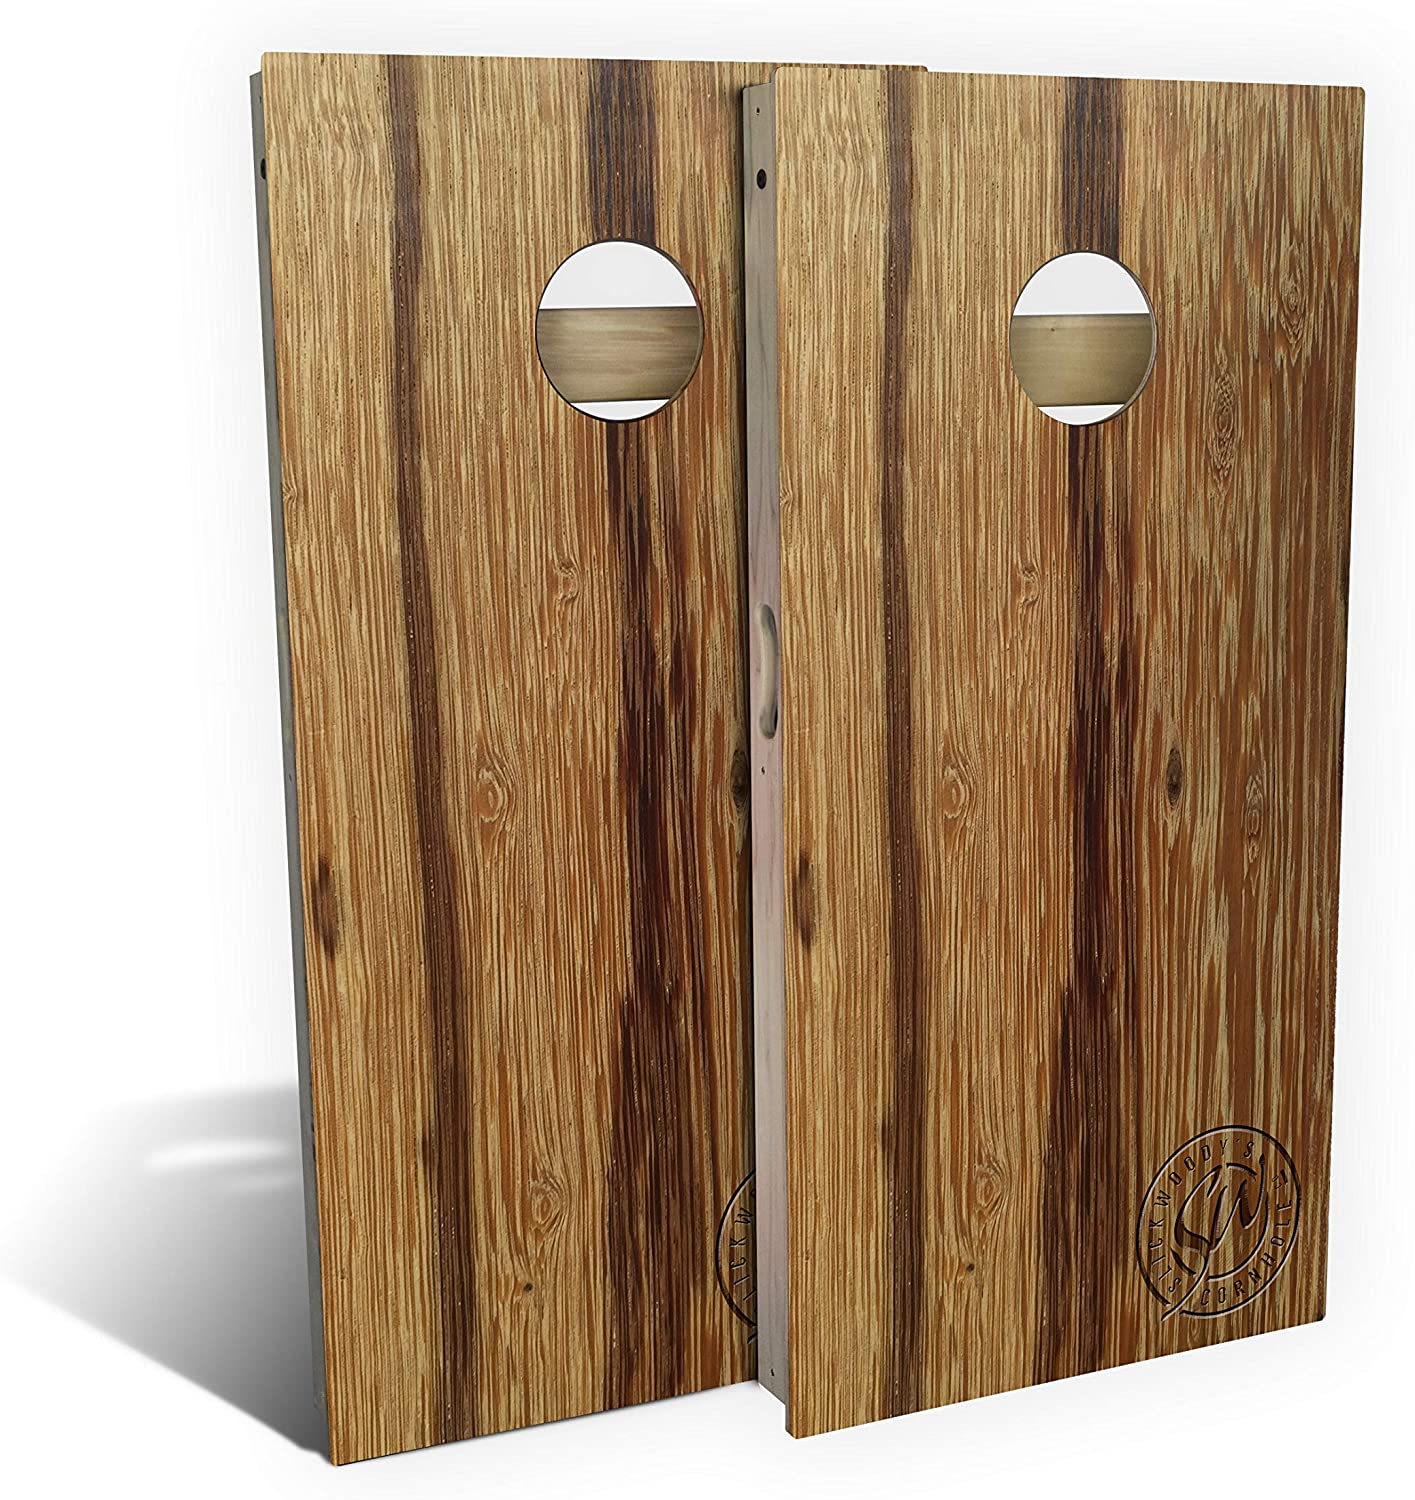 Slick Woody's Marblewood Cornhole Set 8 Max 55% OFF Max 50% OFF Balt Bags with